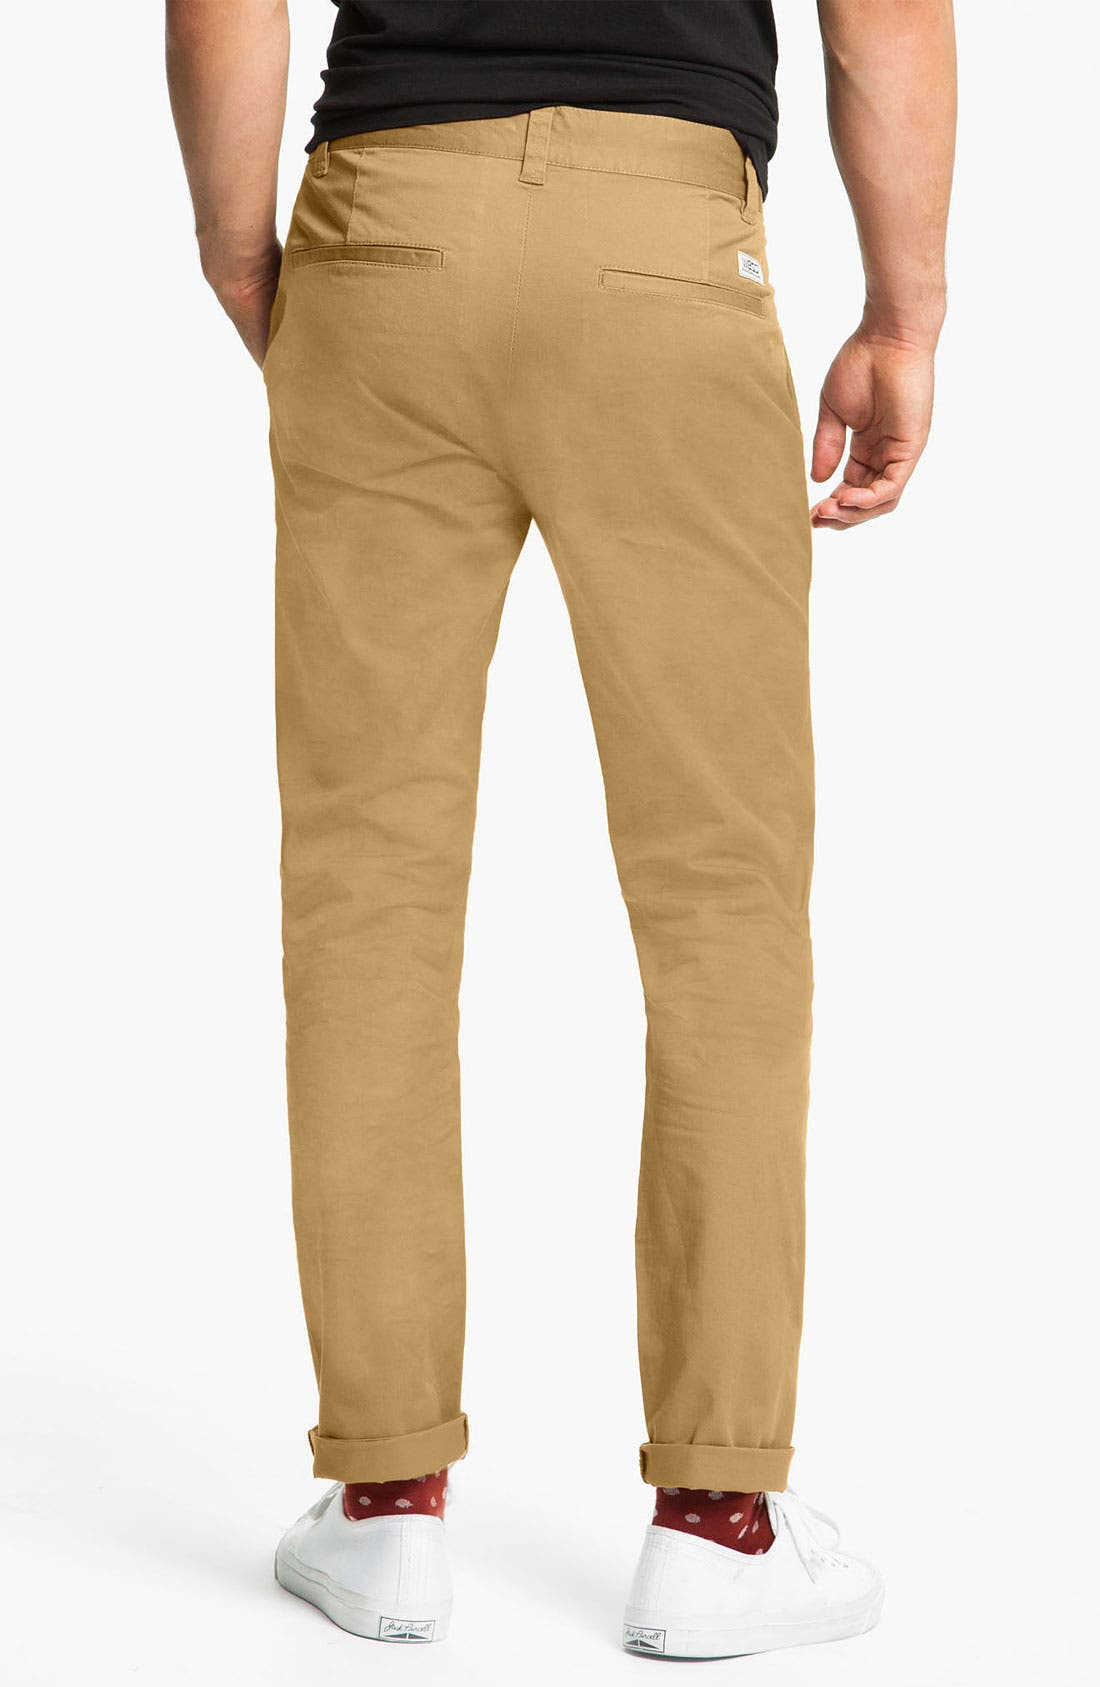 Alternate Image 2  - WeSC 'Eddy' Slim Fit Chinos